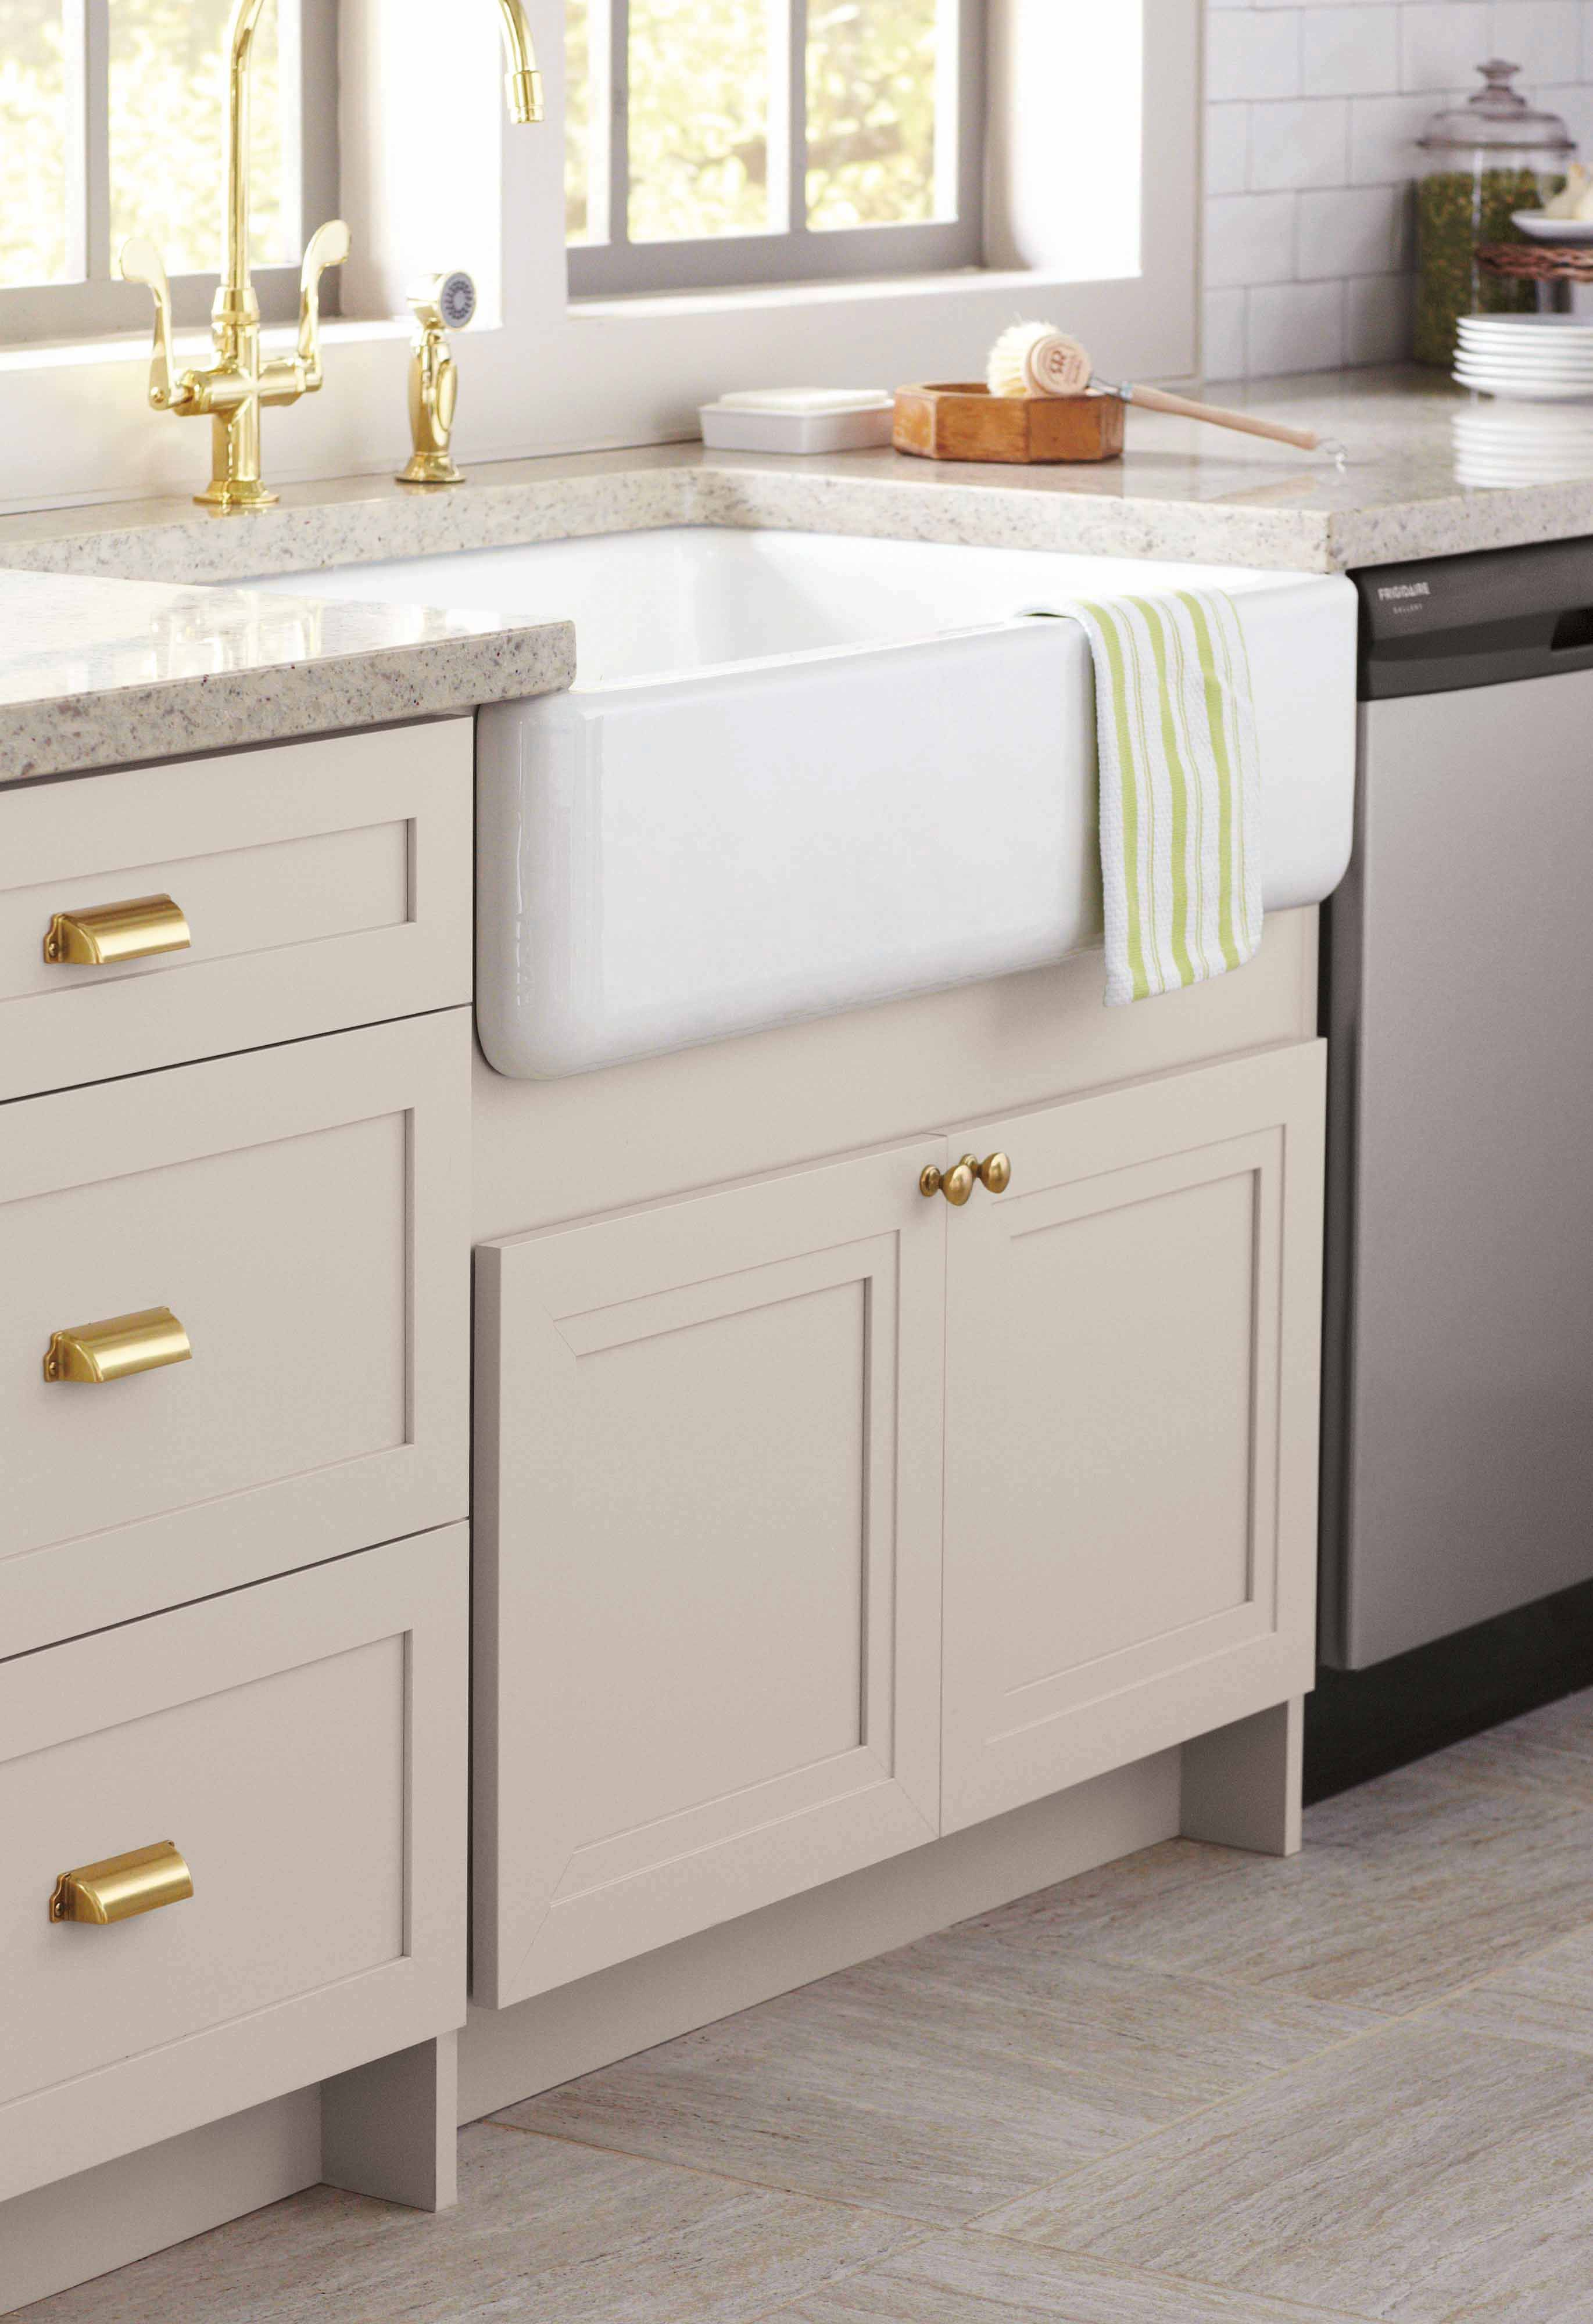 martha stewart living kitchens at homedepot offer over 50 rh pinterest com